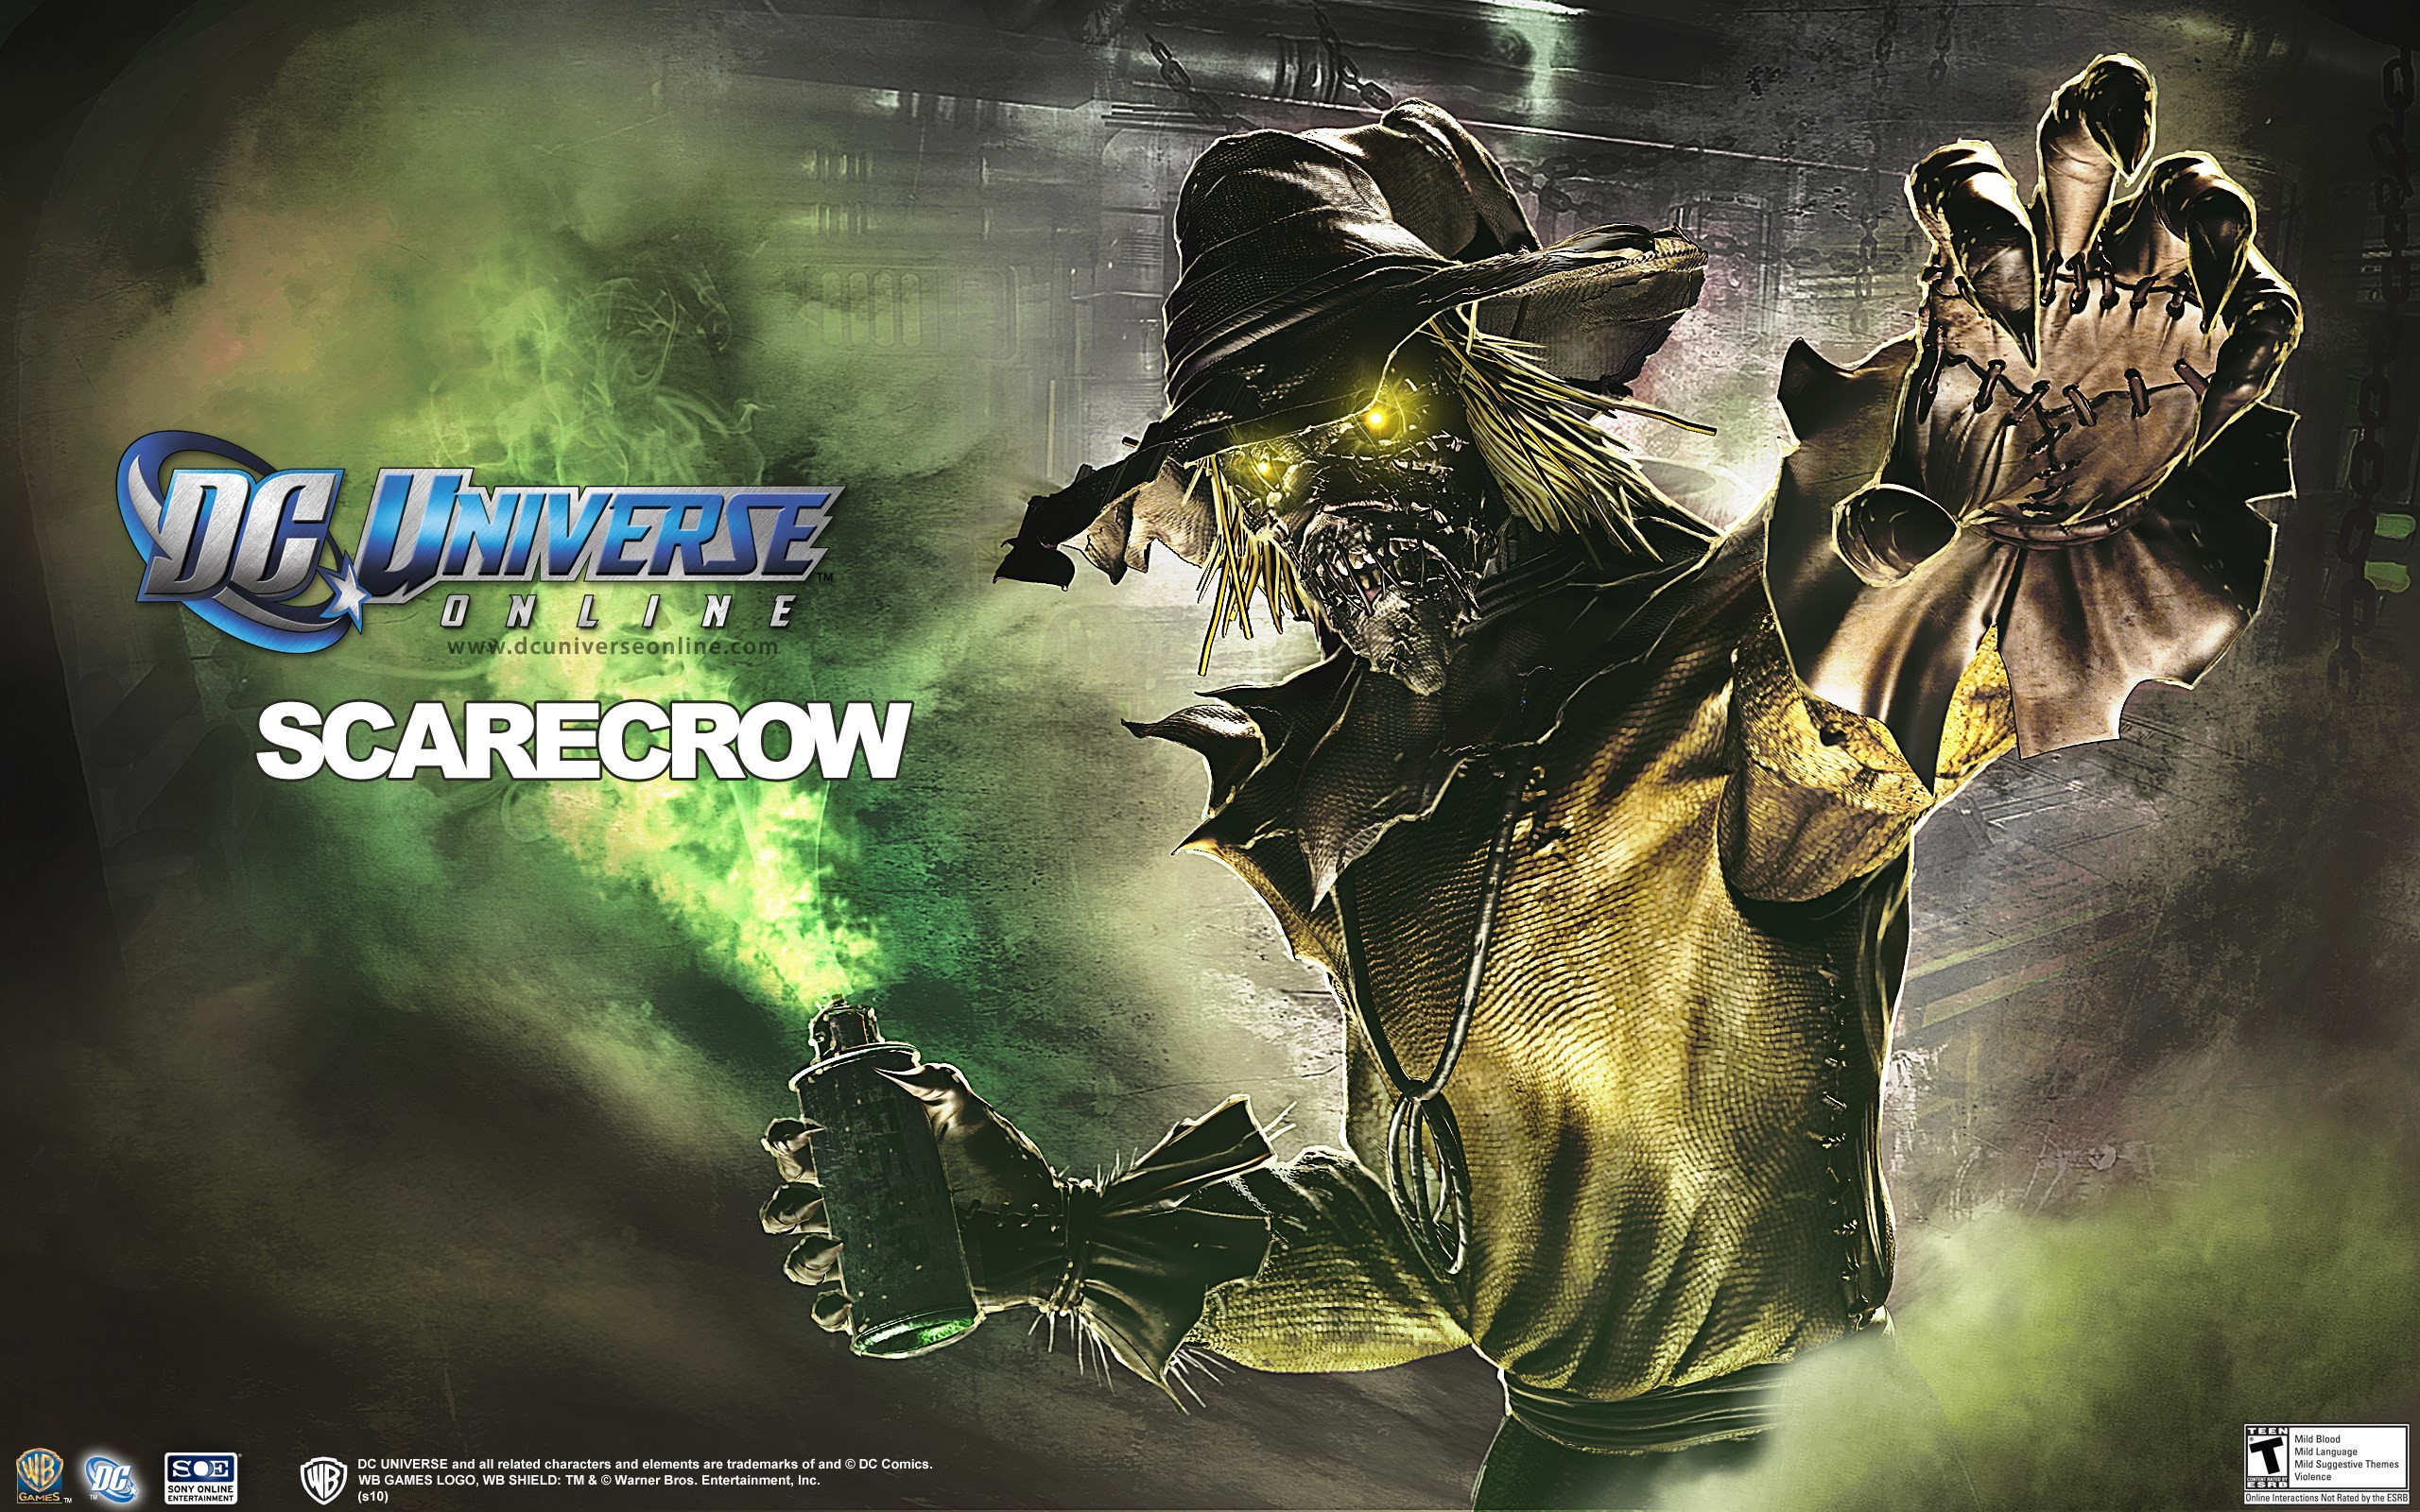 2560x1600 #1306465, Images for Desktop: DC Universe Online wallpaper